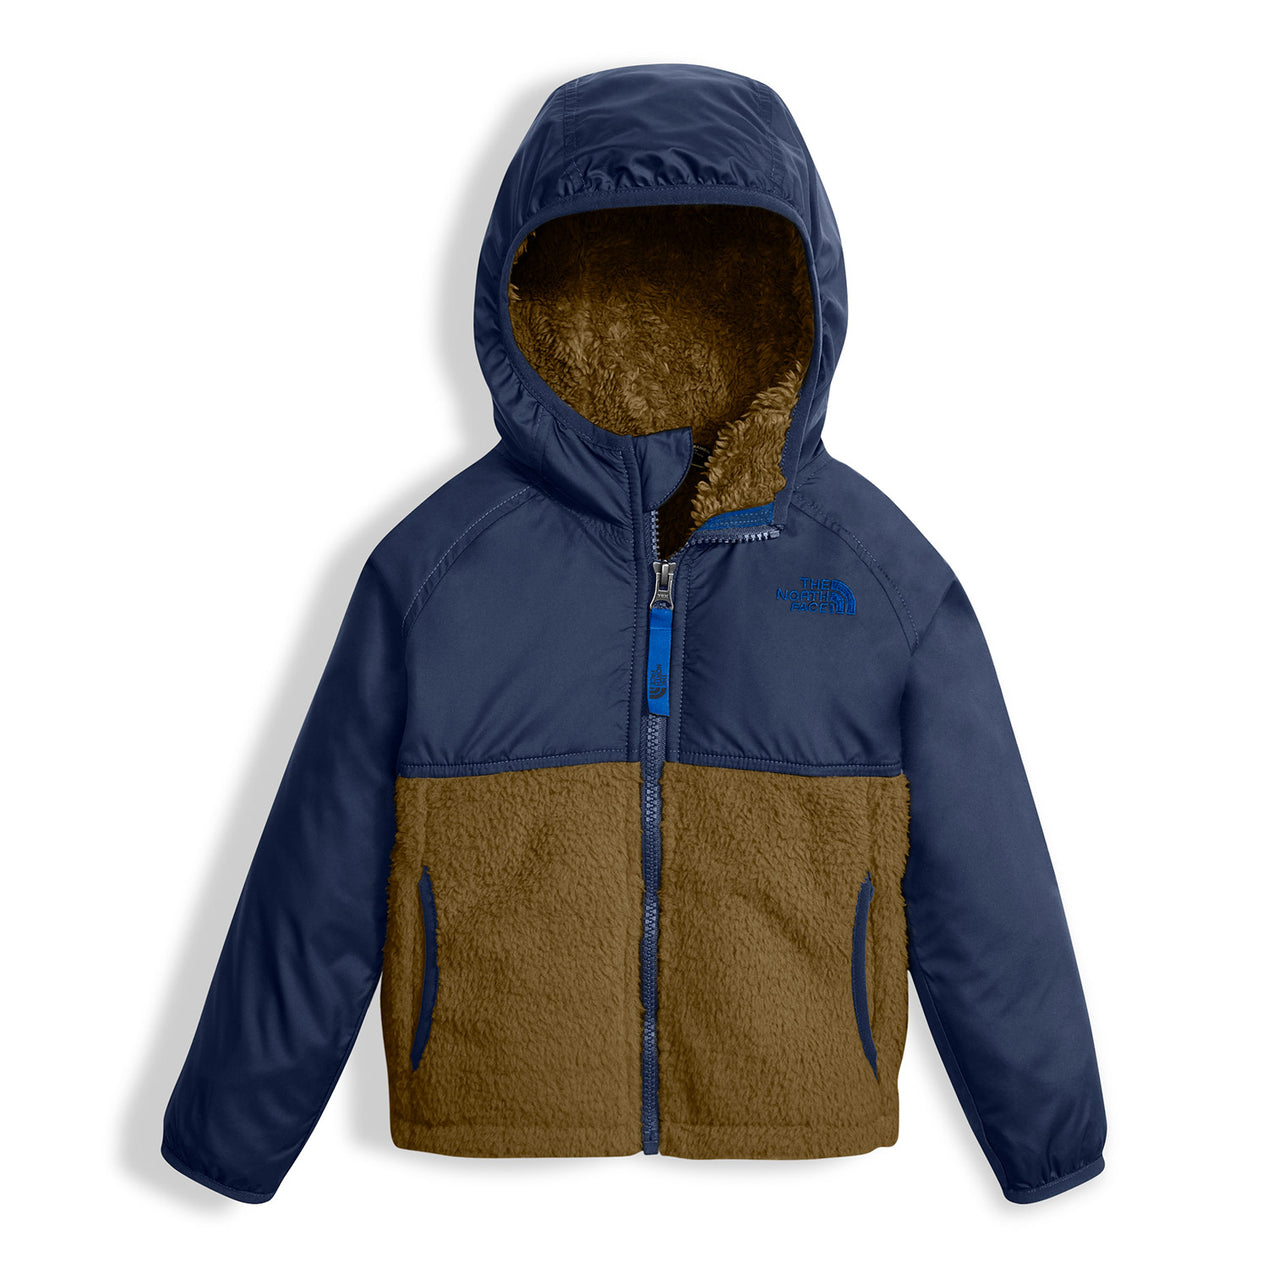 3fae7db8a The North Face Toddler Boy s Sherparazo Hoodie